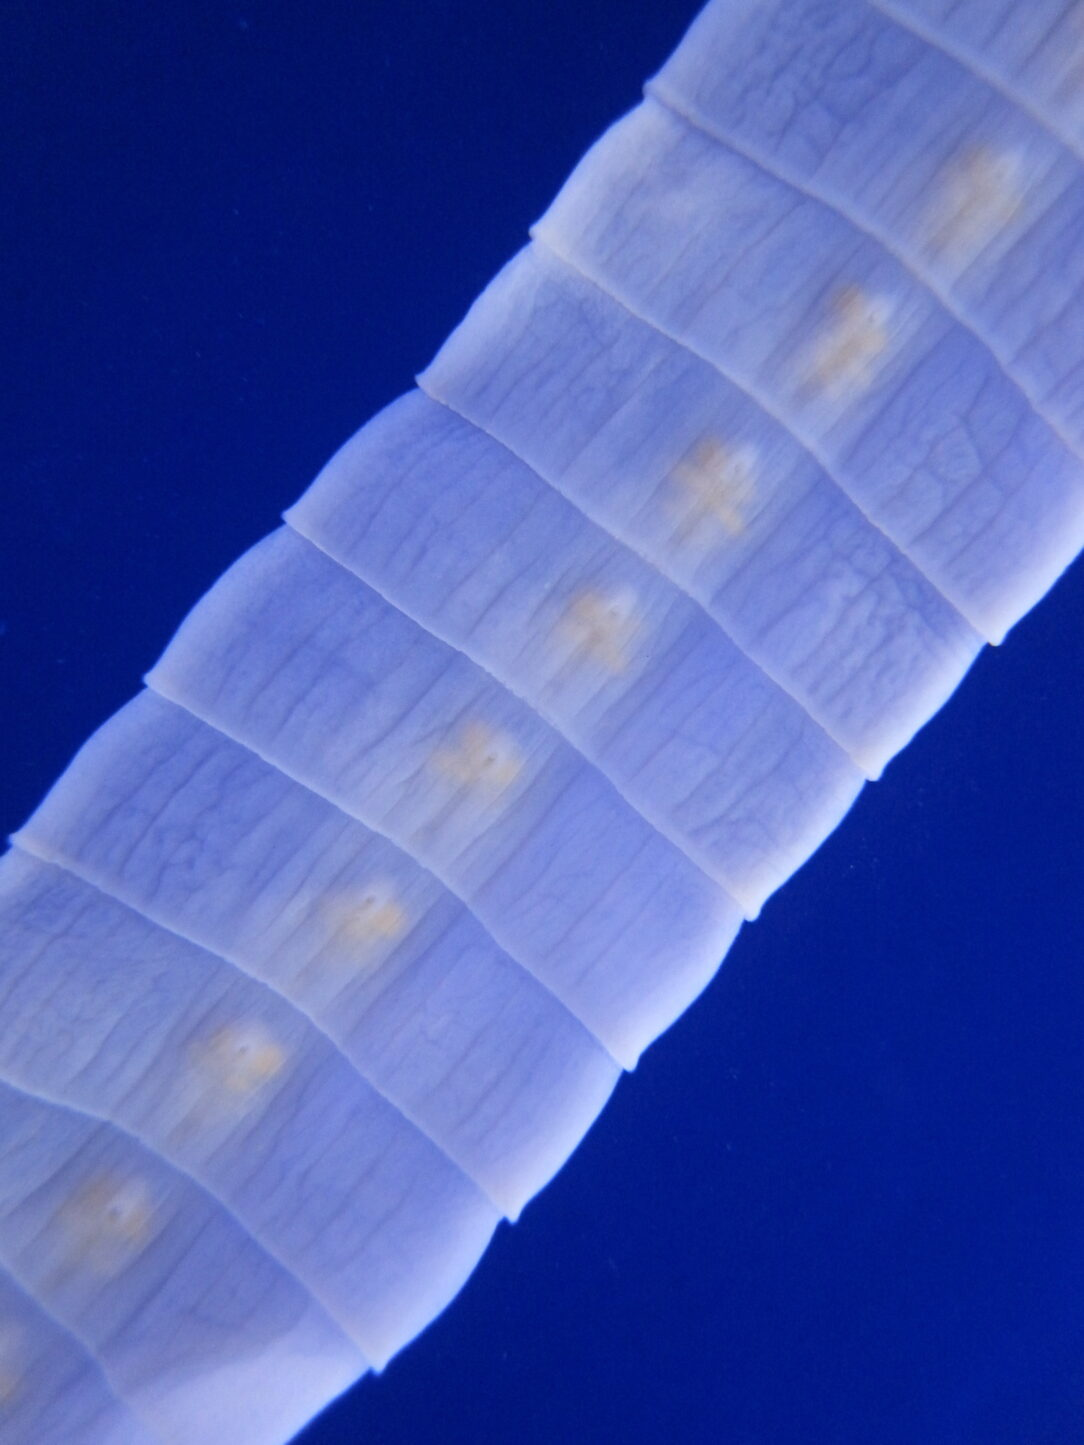 close-up picture of tapeworm